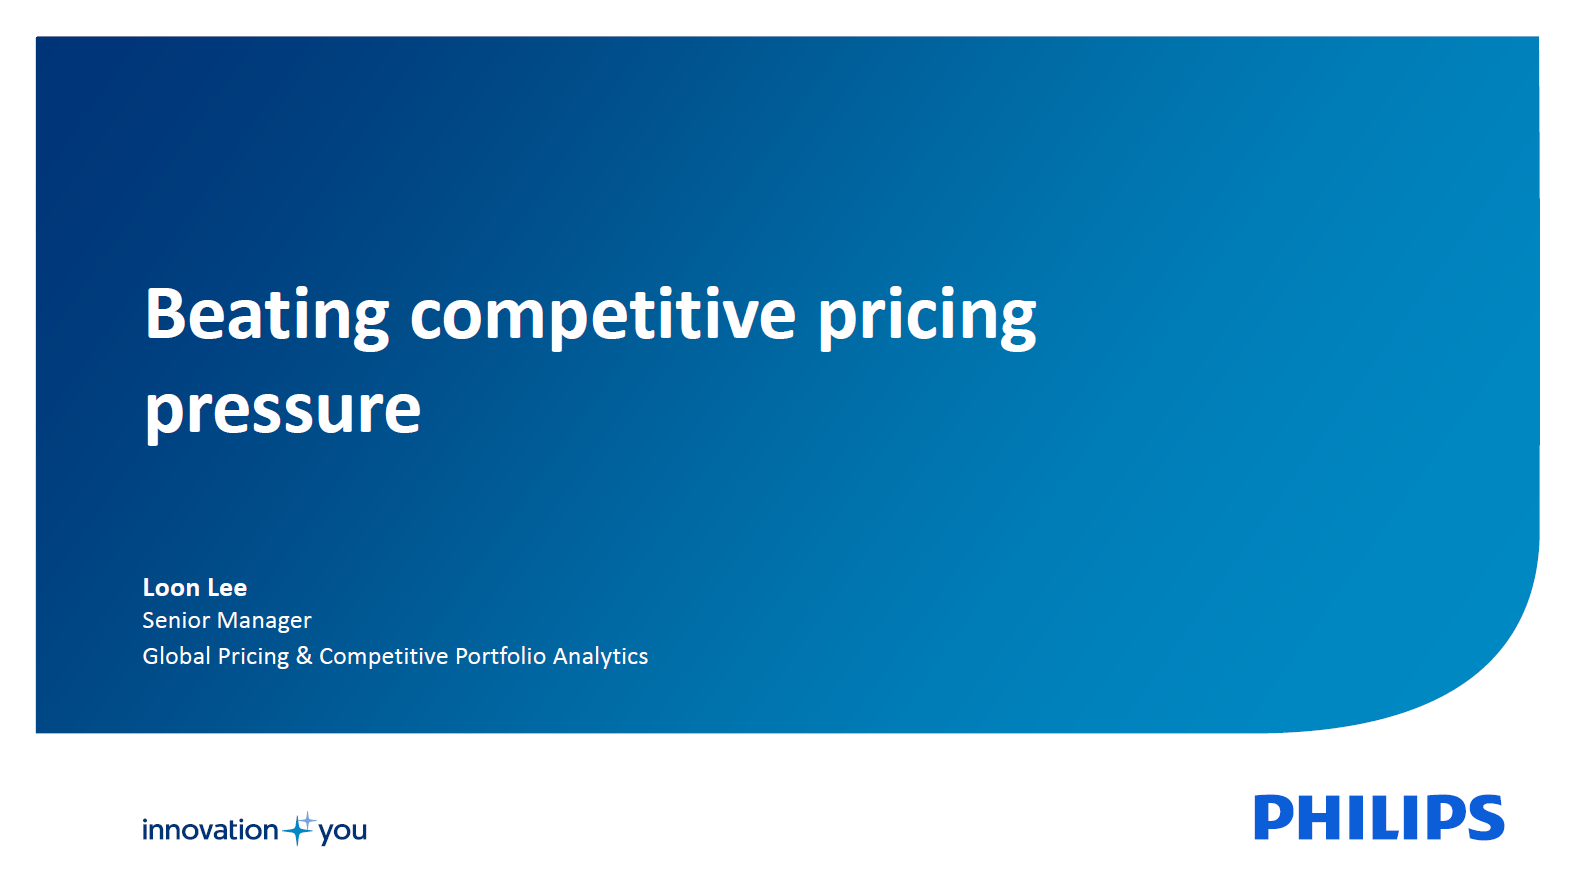 Philips Medical Systems Presentation on Beating Competitive Pricing Pressure